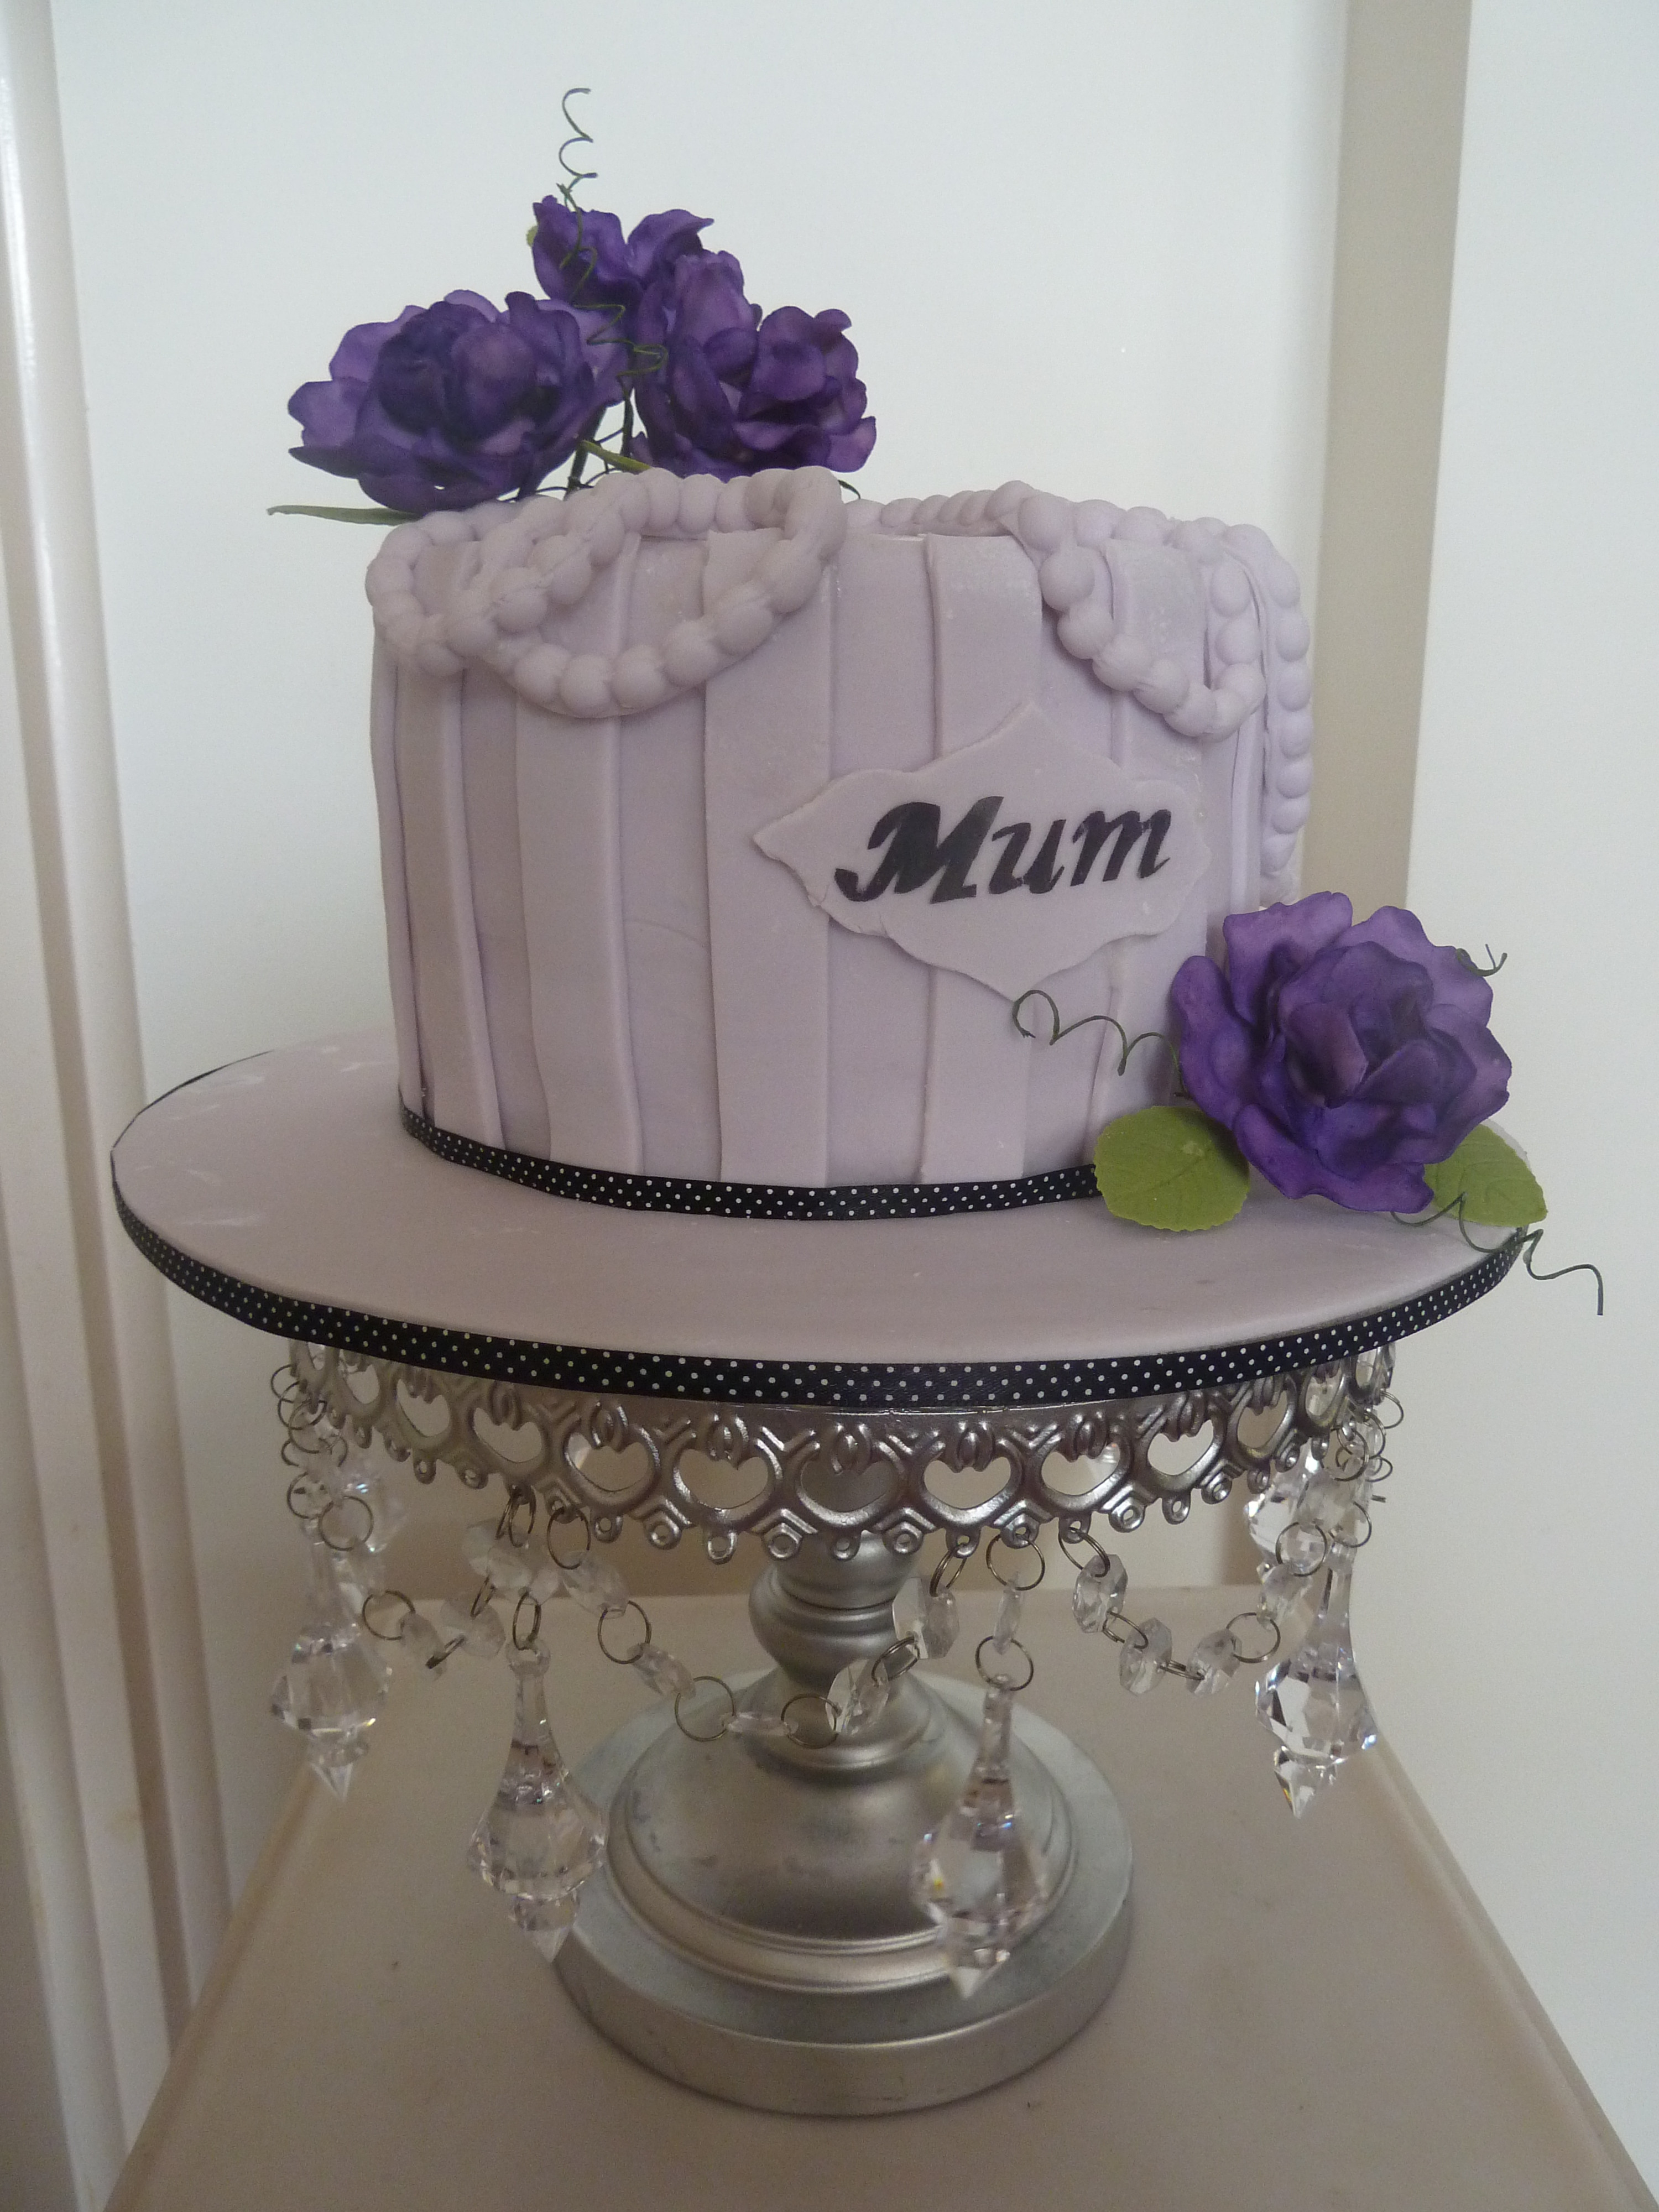 Best ideas about Birthday Cake Designs For Him . Save or Pin Adult Birthday Cakes Now.